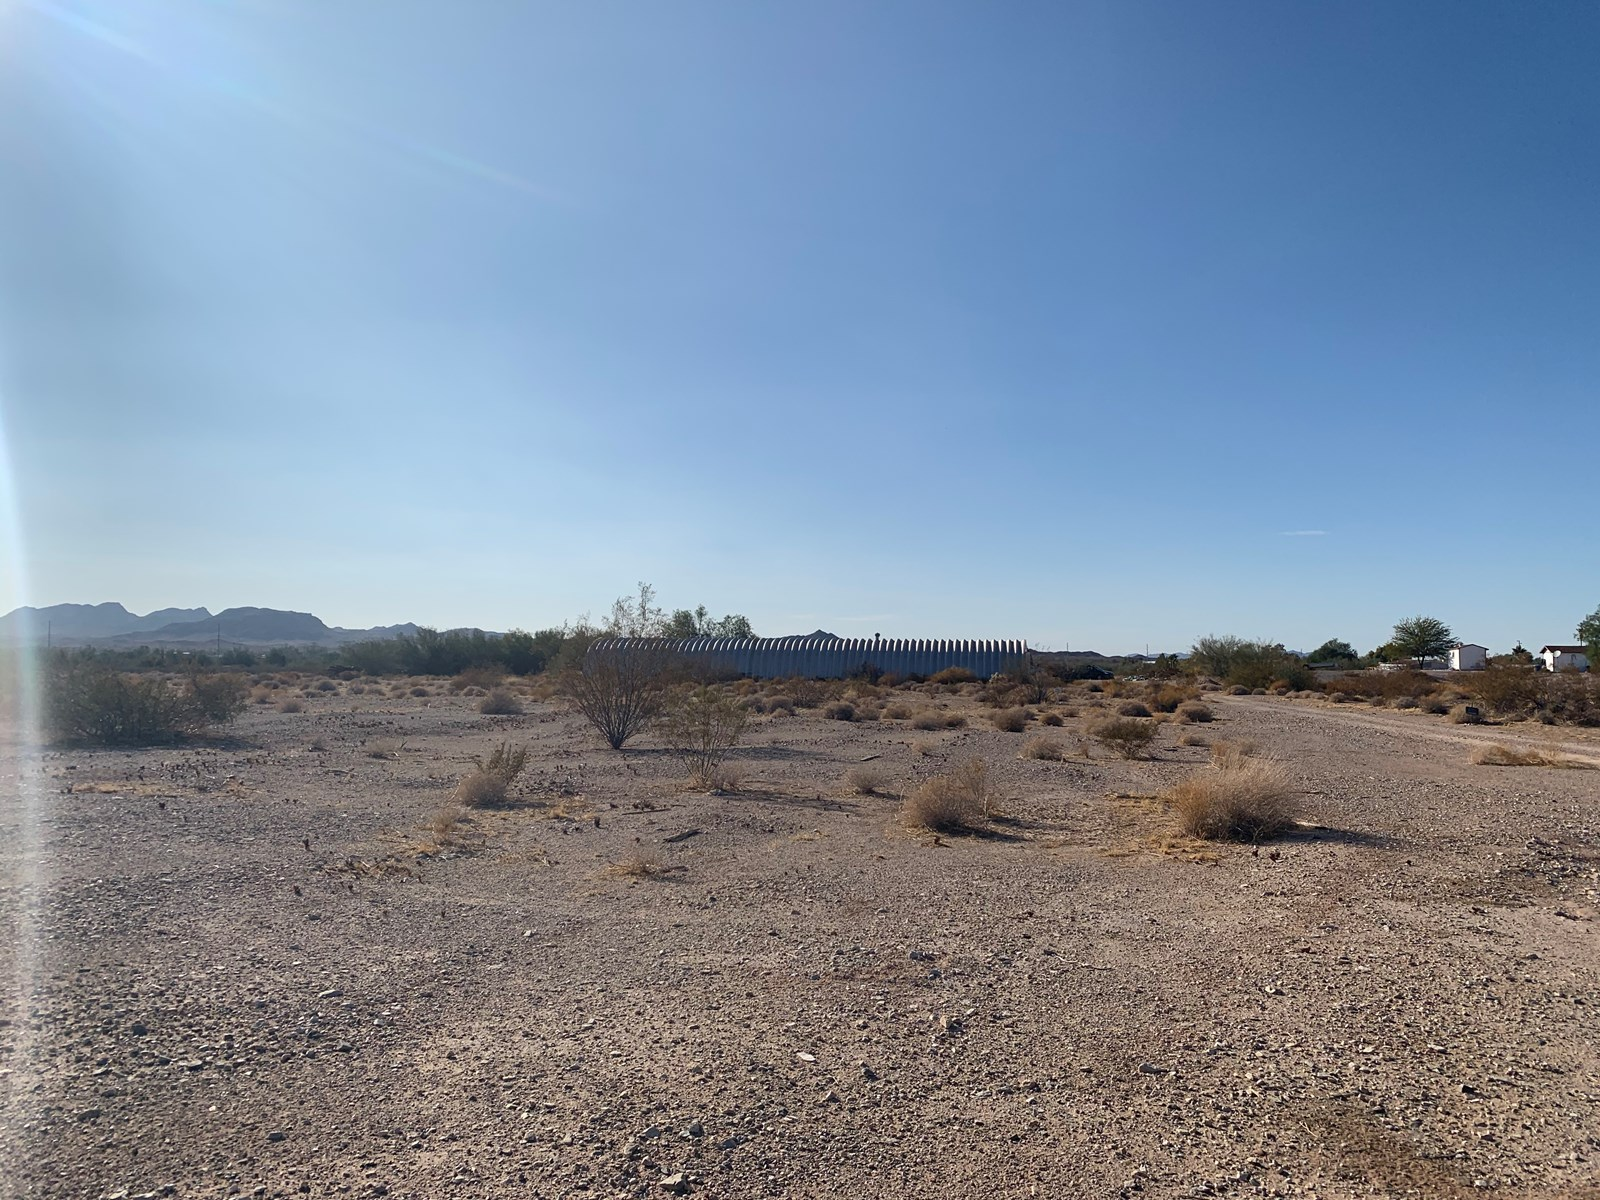 40 Acre Parcel Bouse, AZ  with well and septic